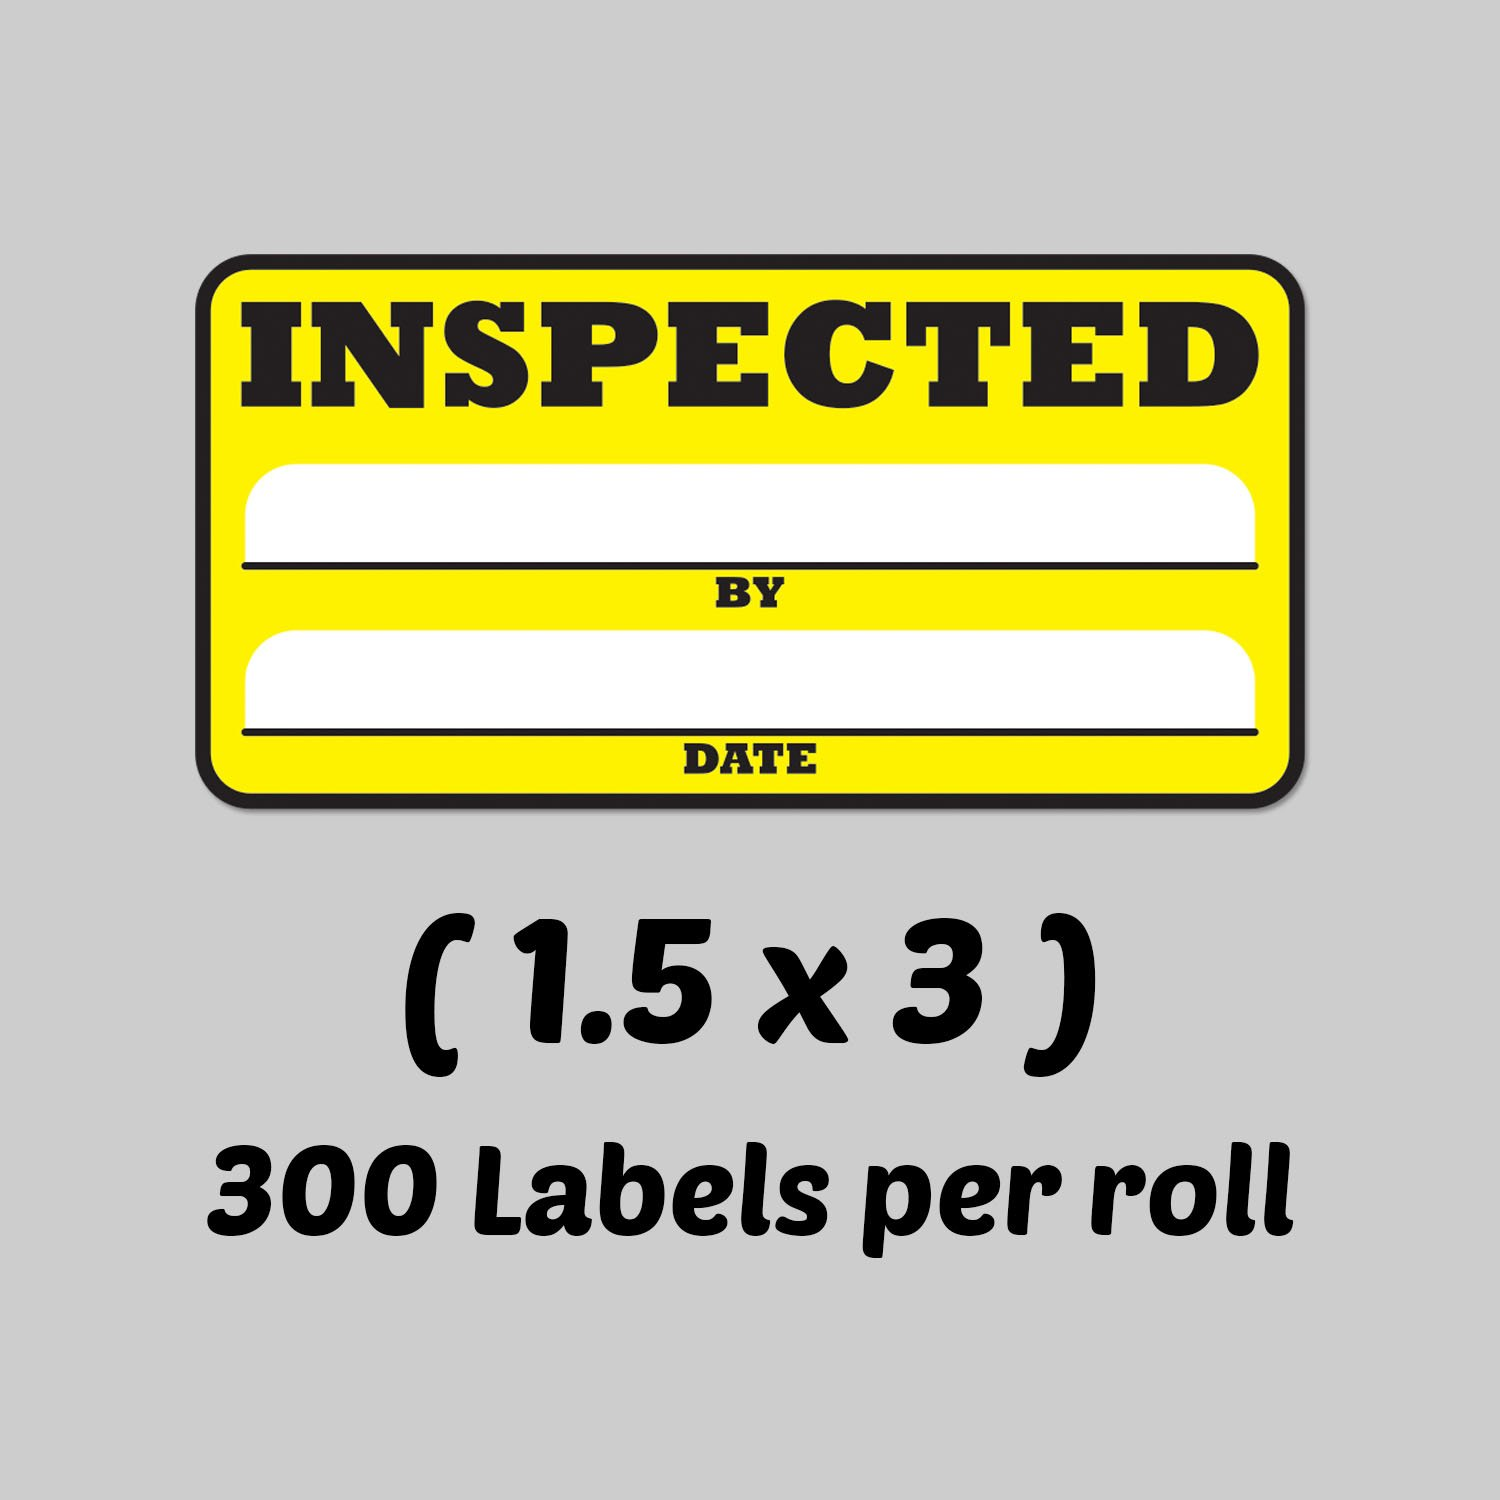 Inspected by Date Special Handling Shipping Warehouse Inventory Control Pallet Yellow Stickers 2 Rolls Yellow, 2 Rolls Per Pack TUCO DEALS 1.5 x 3 Inch